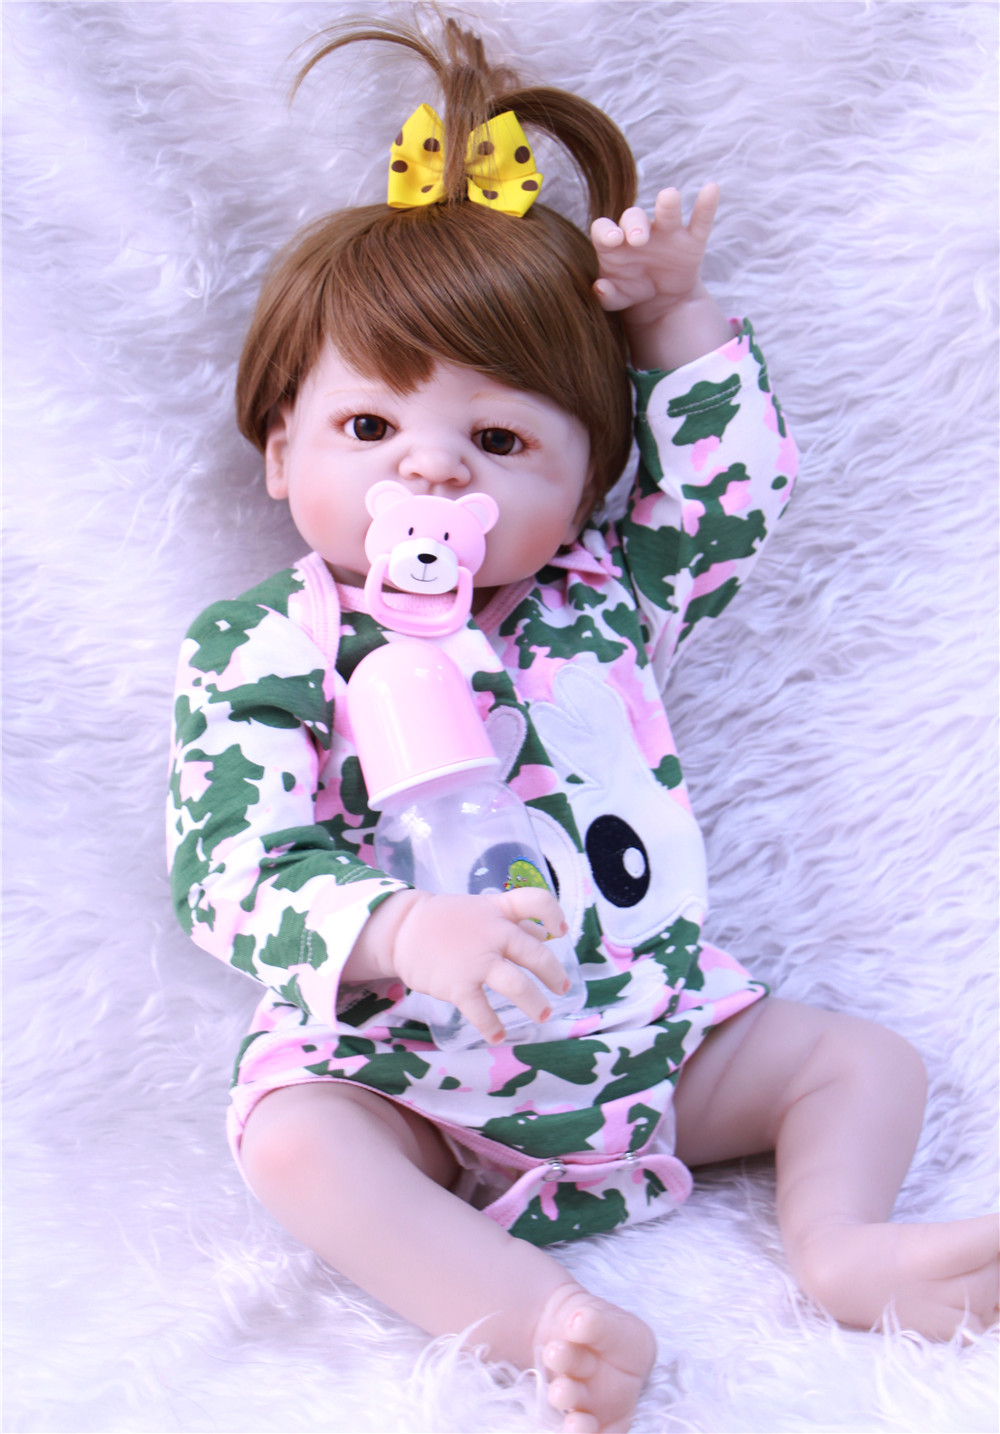 55cm Full silicone reborn babies dolls bebe alive NPK high quality lifelike bebe kids best birthday gift bonecas bathe play toy 55cm Full silicone reborn babies dolls bebe alive NPK high quality lifelike bebe kids best birthday gift bonecas bathe play toy